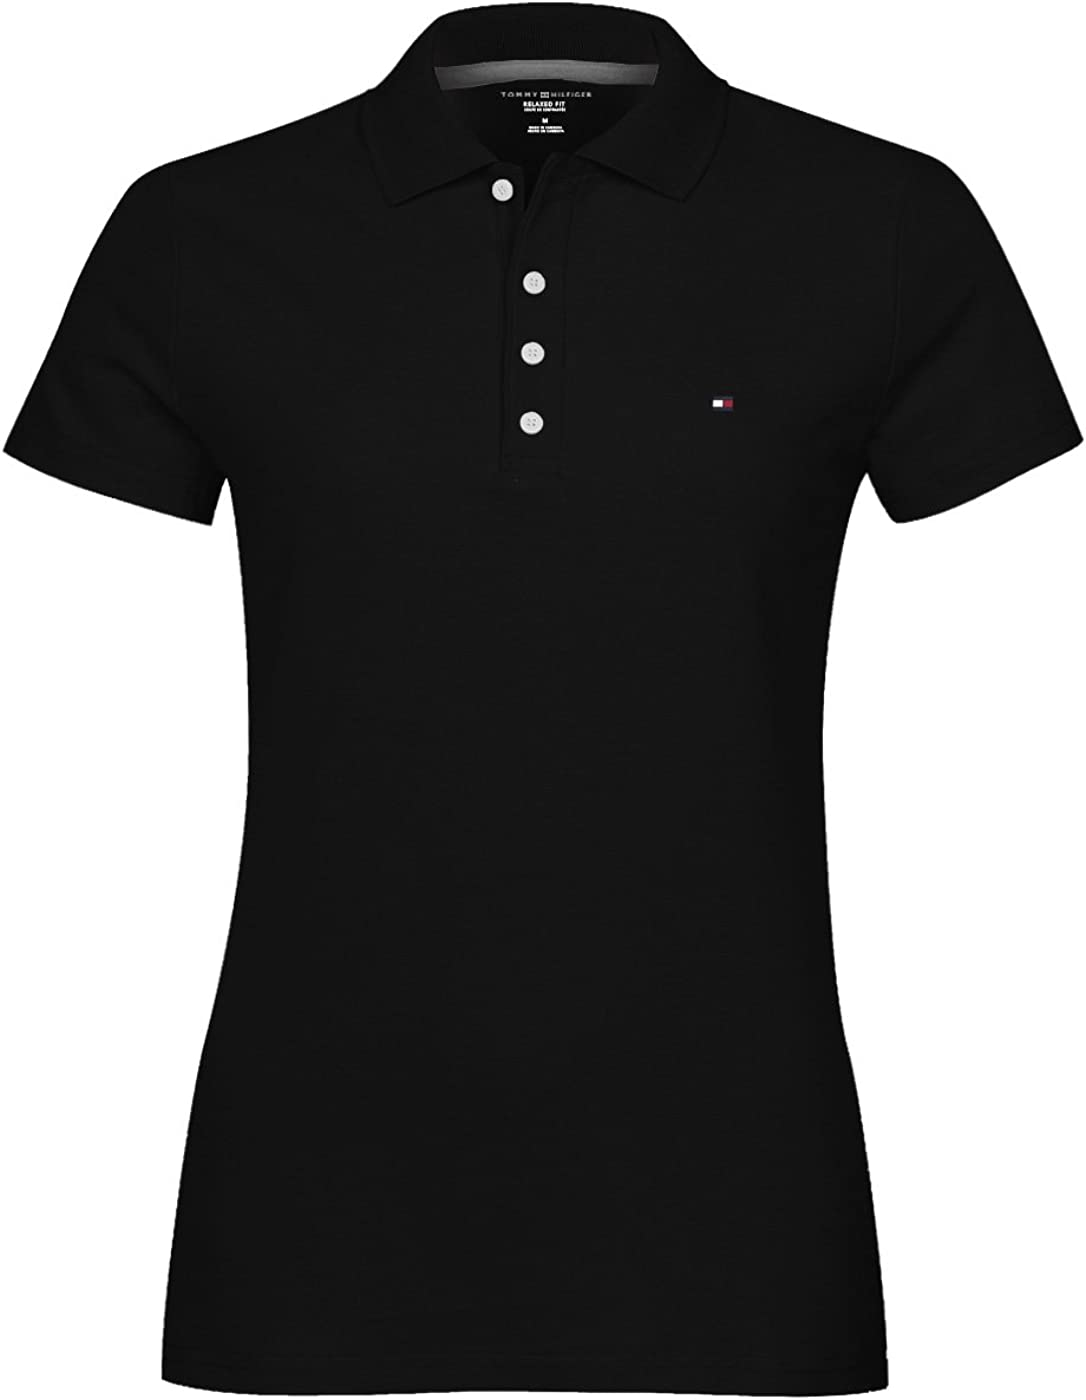 Tommy Hilfiger Women's Classic Fit Mesh Polo Shirt